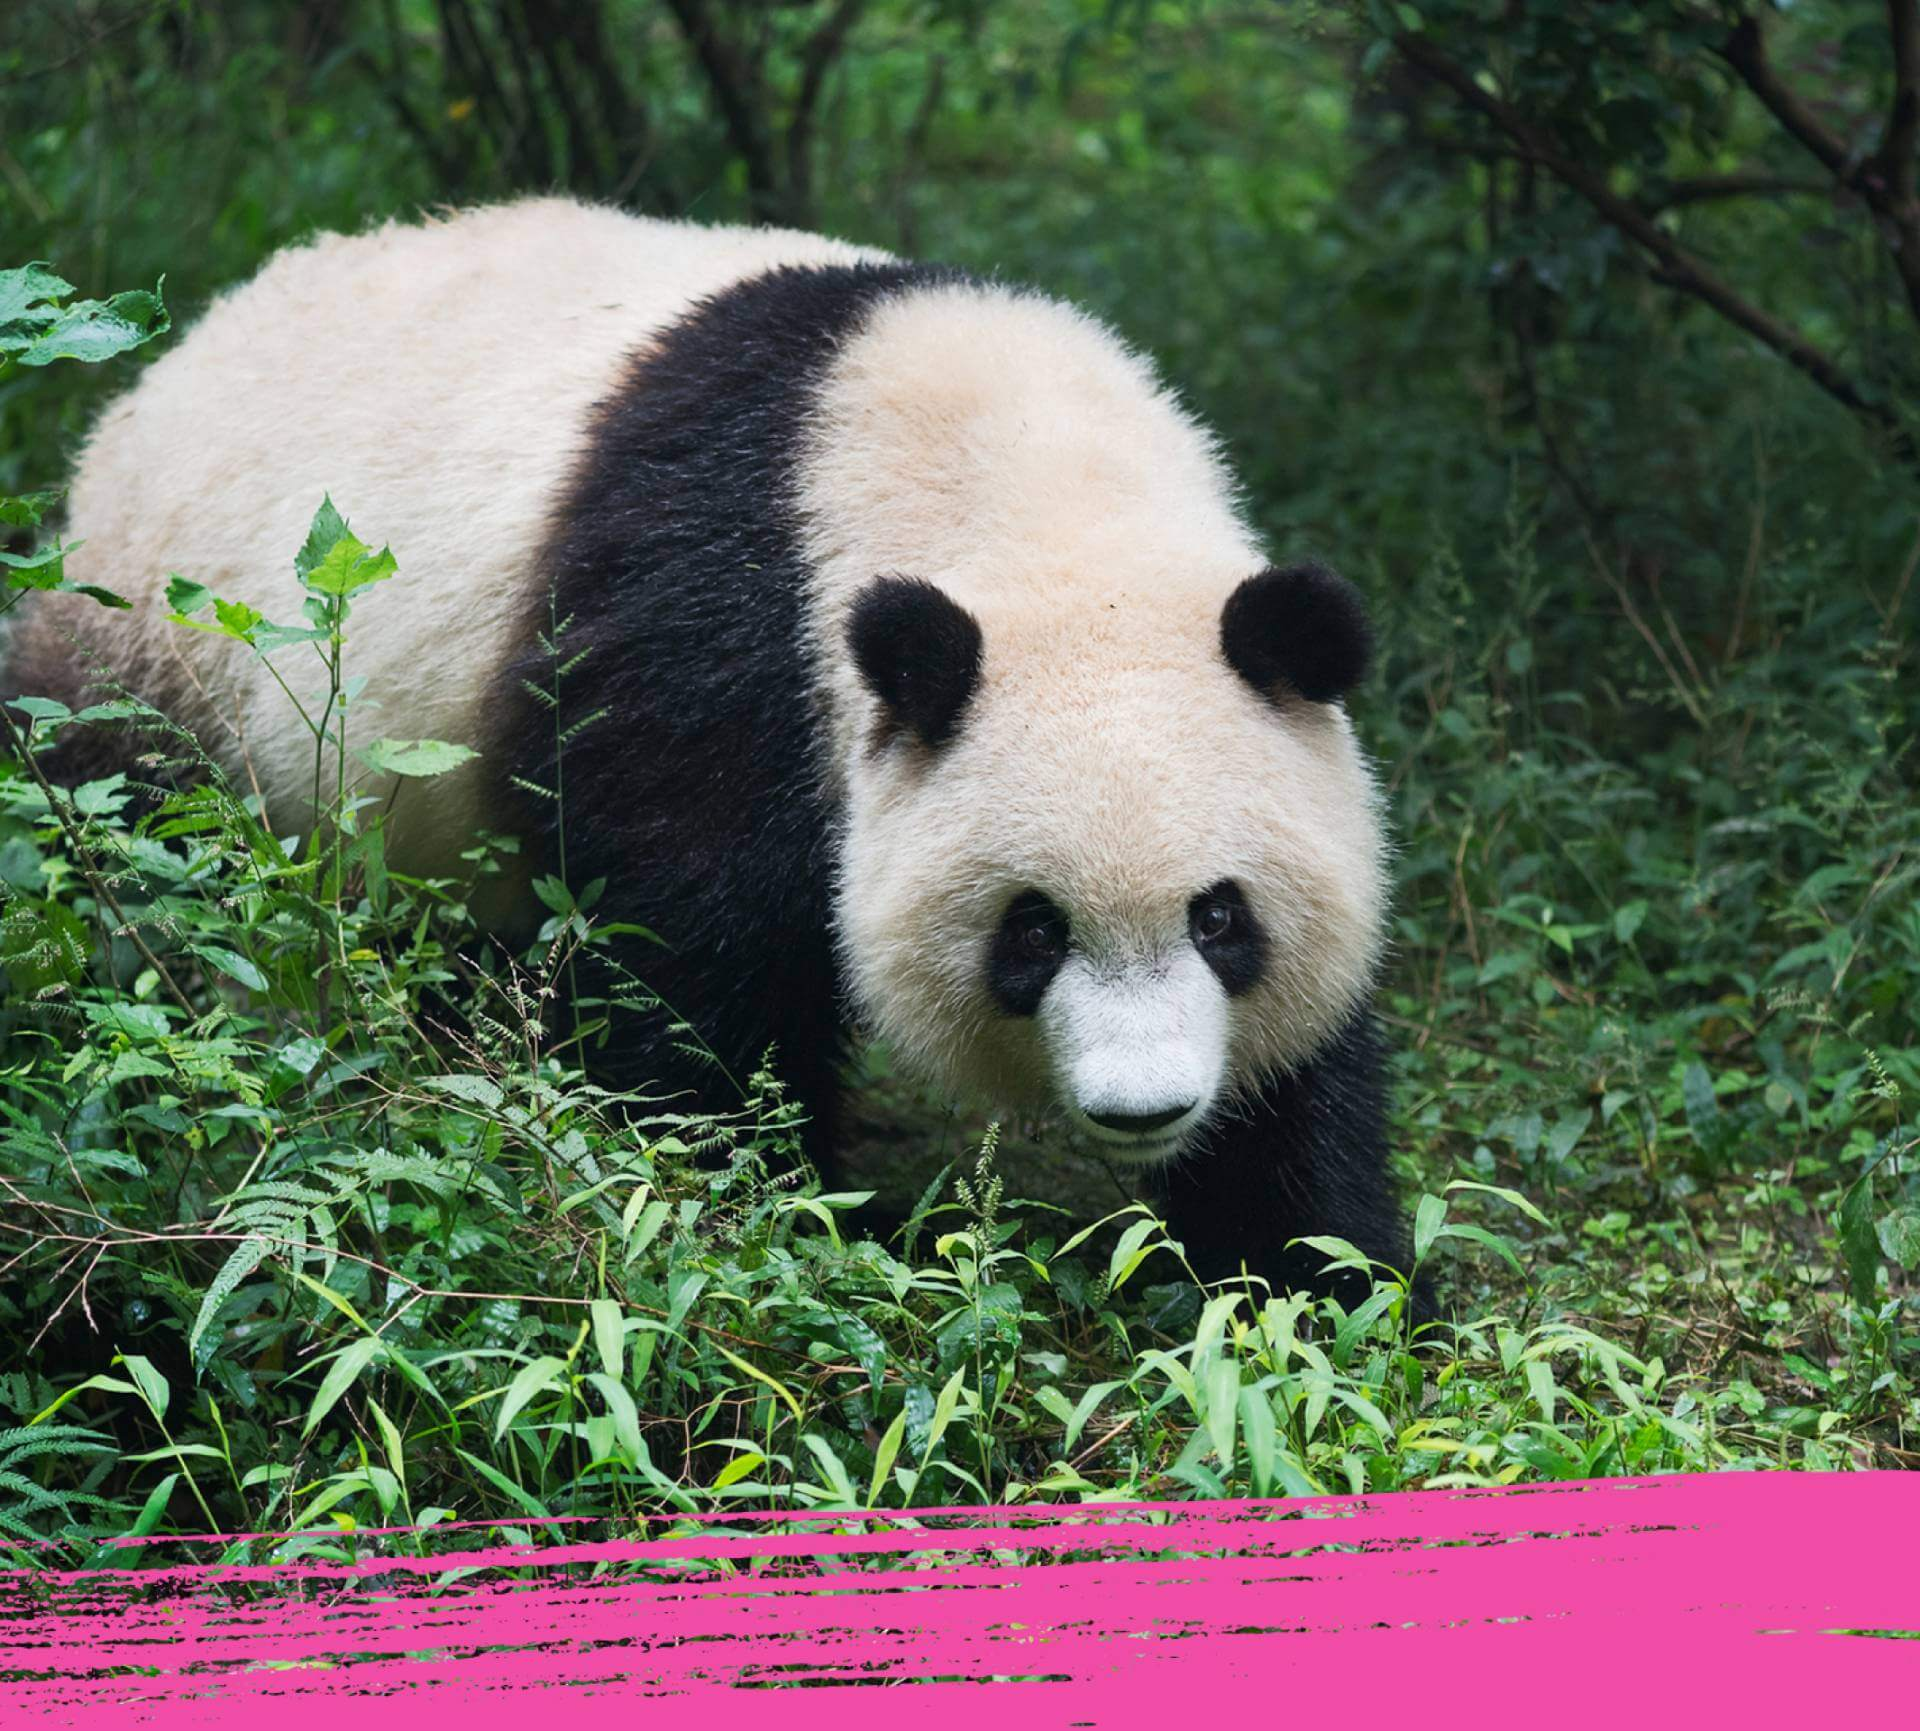 Giant panda marking its territory